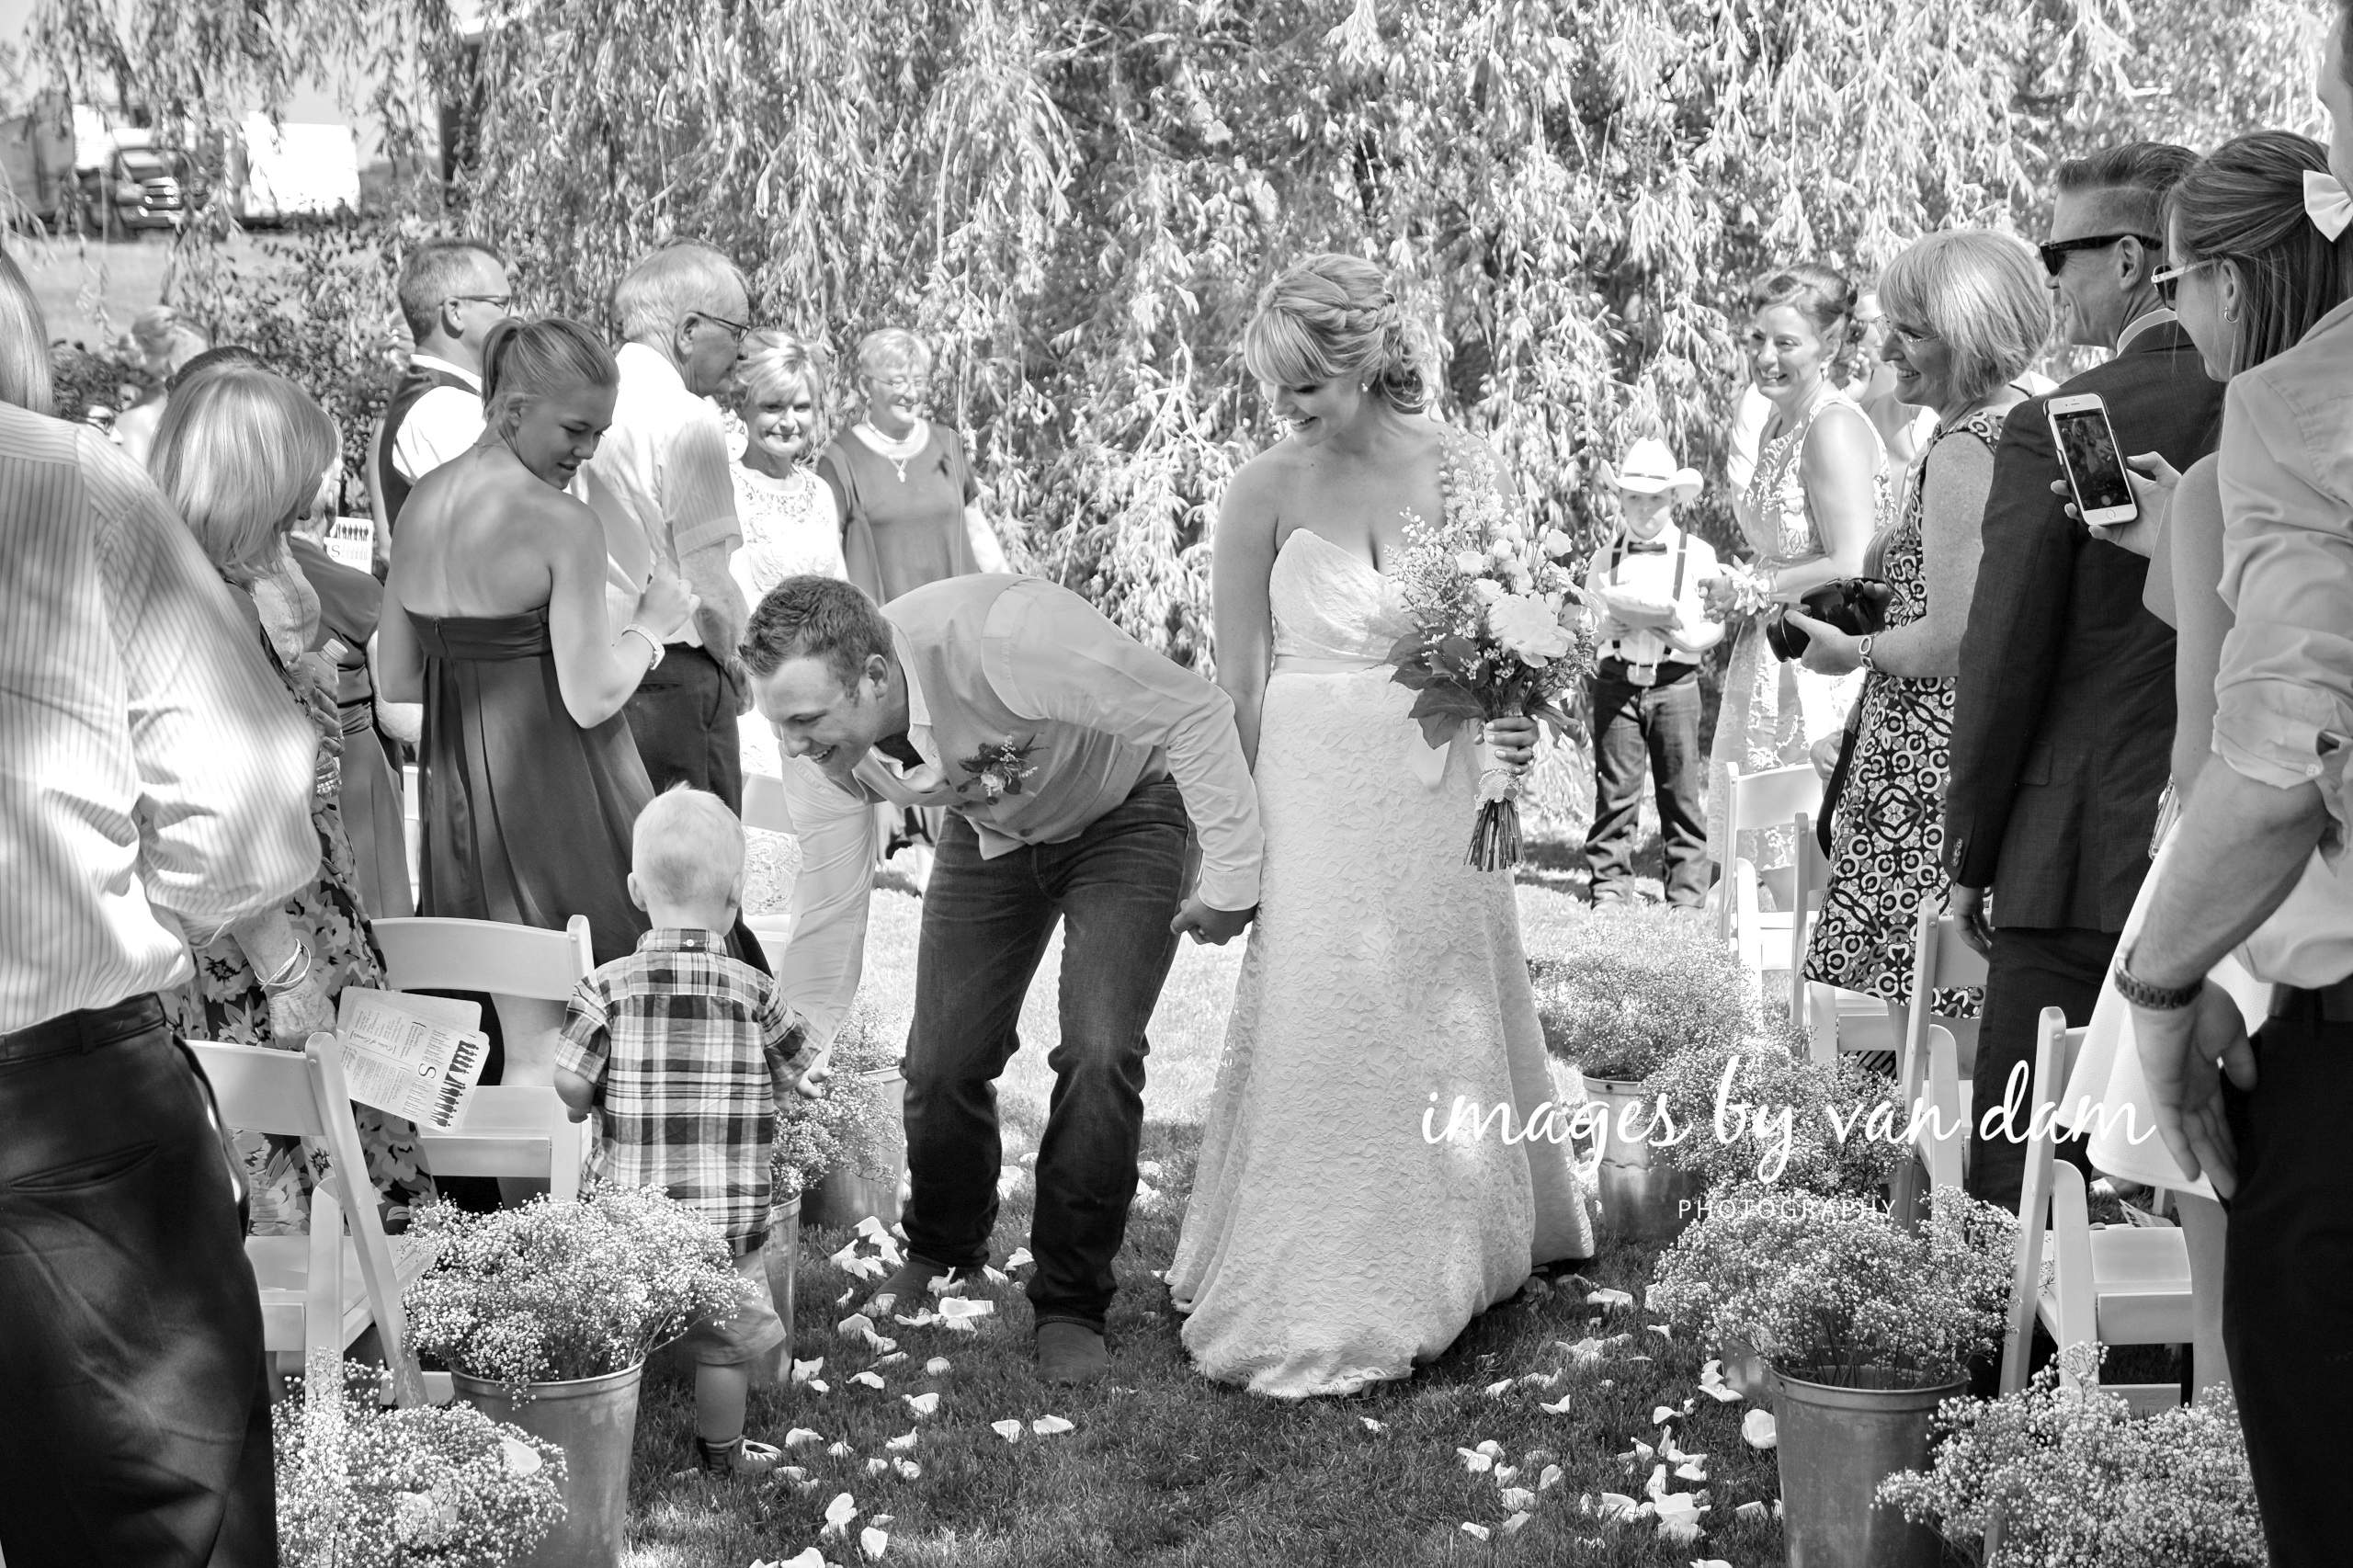 Groom stops to Shake Hand of Young Boy During Recessional